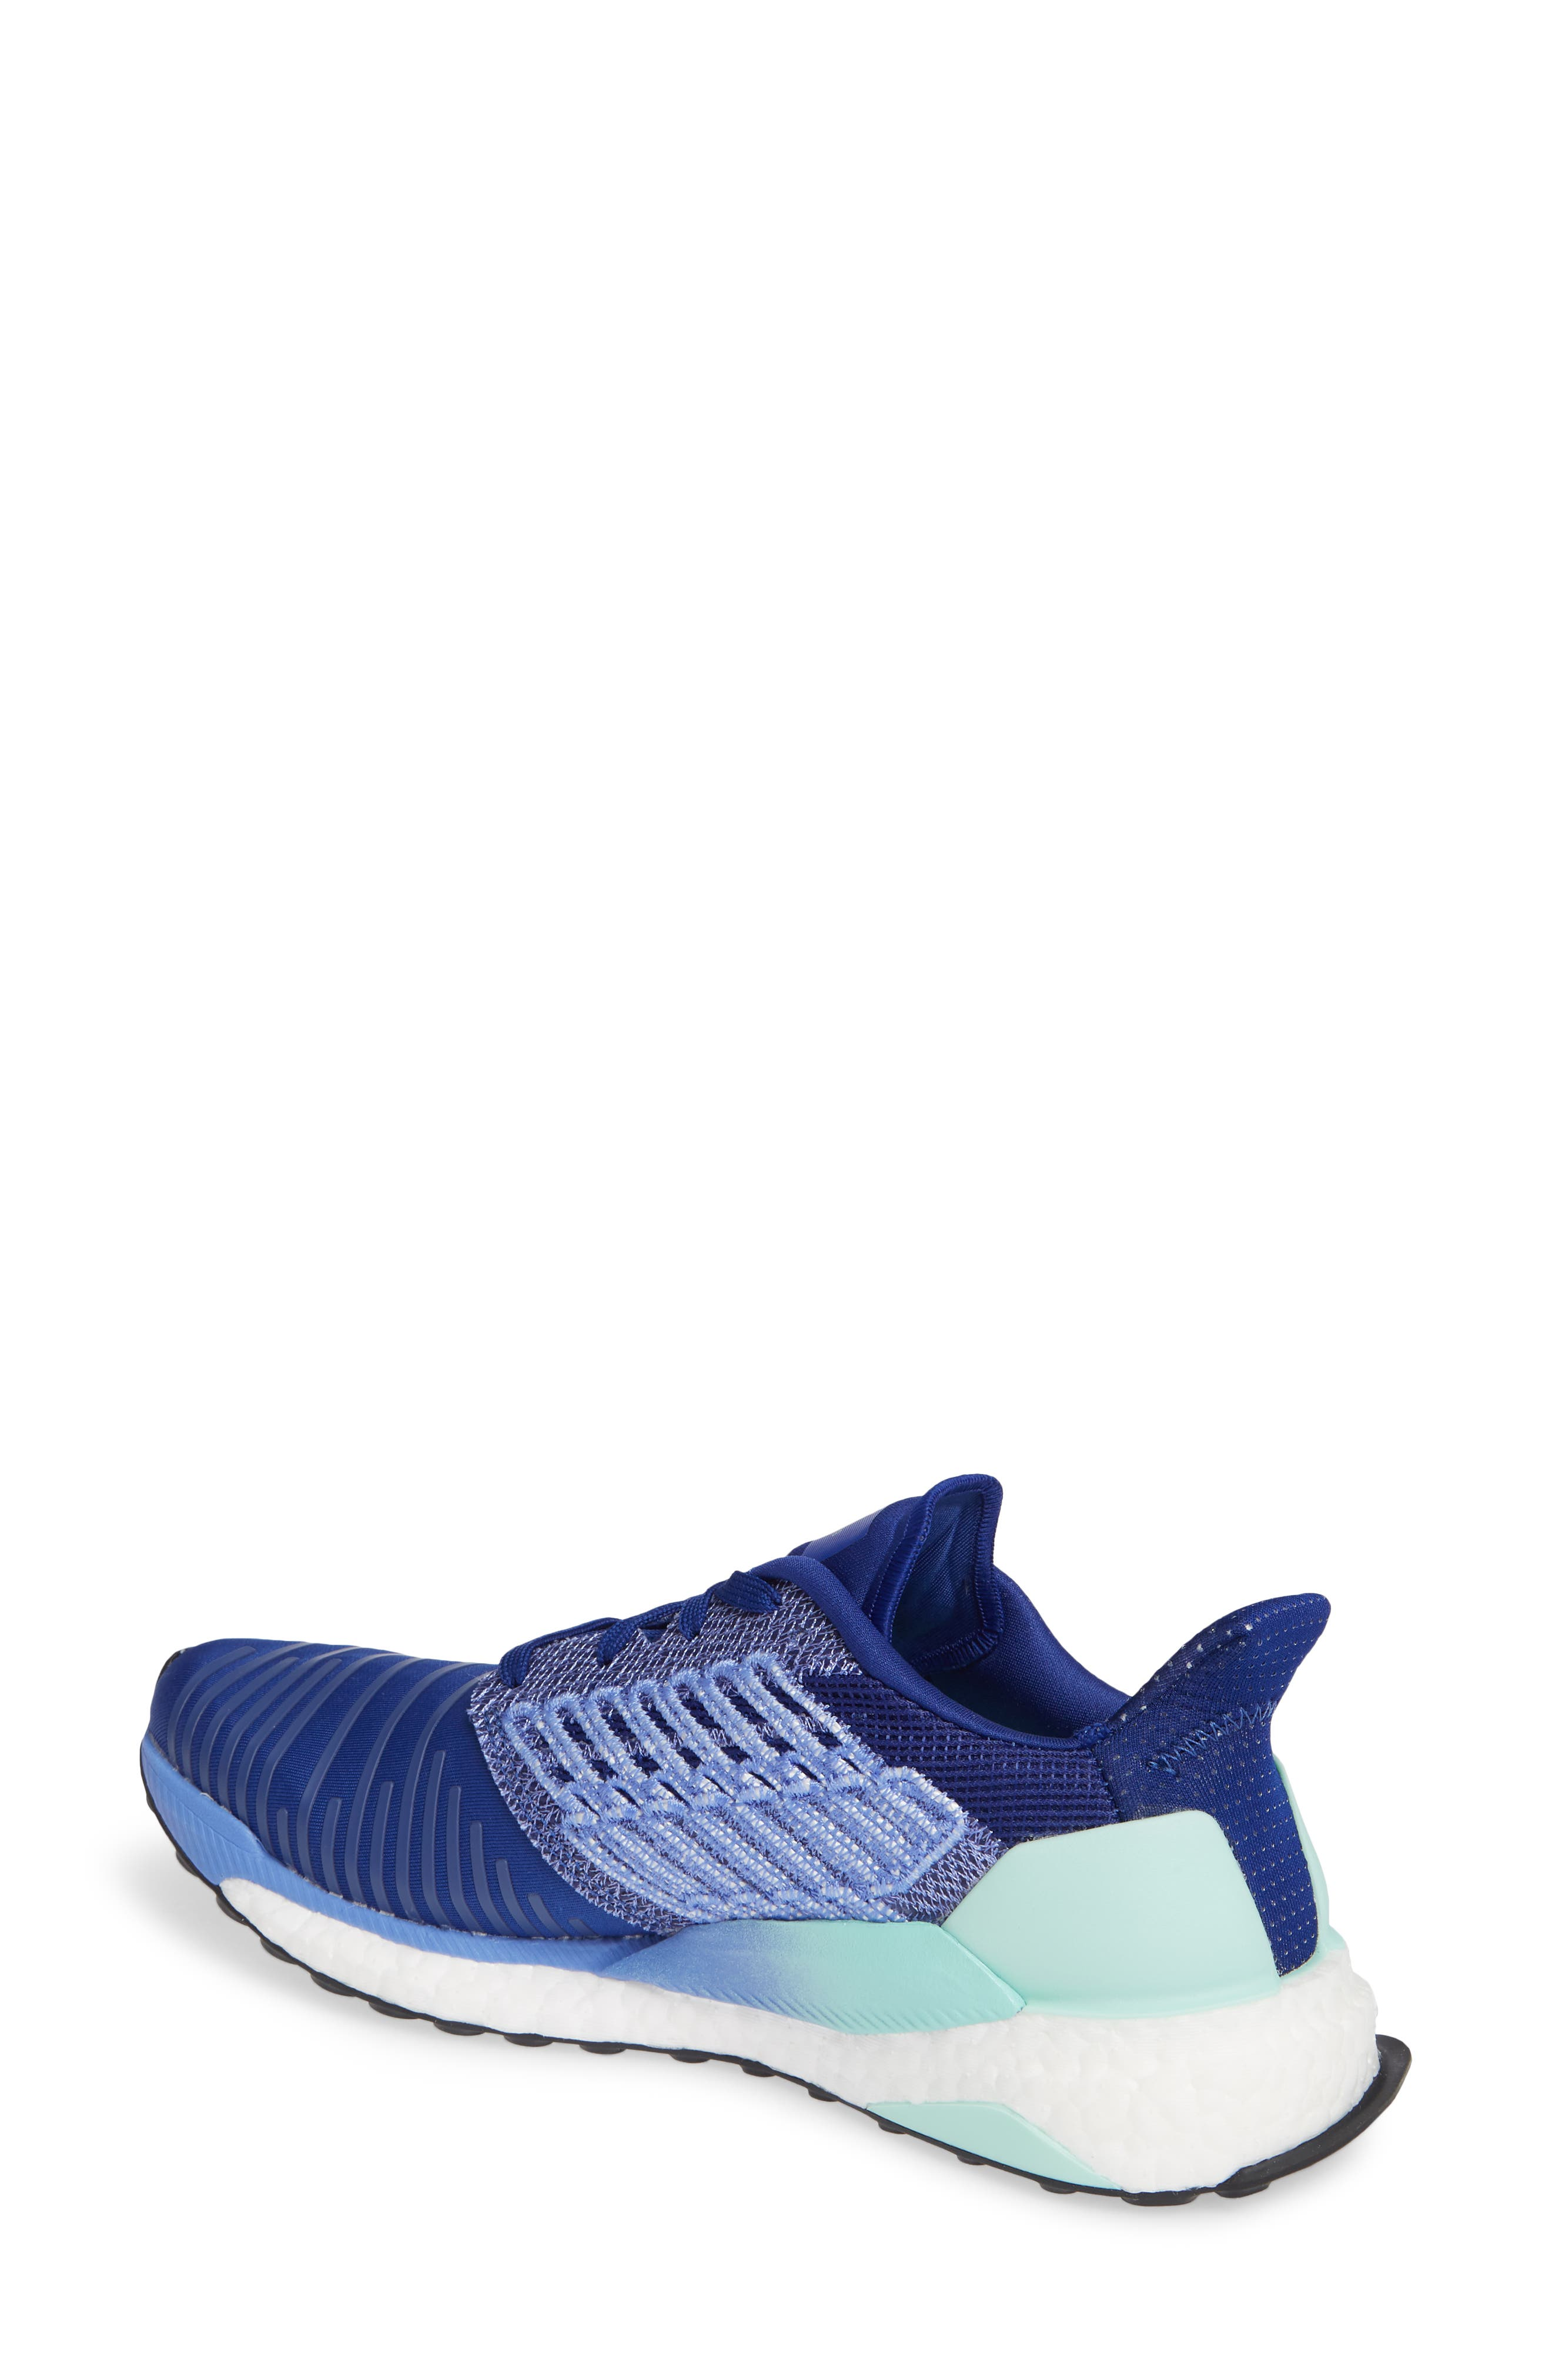 Solarboost Running Shoe,                             Alternate thumbnail 2, color,                             MYSTERY INK/ CLEAR MINT/ LILAC